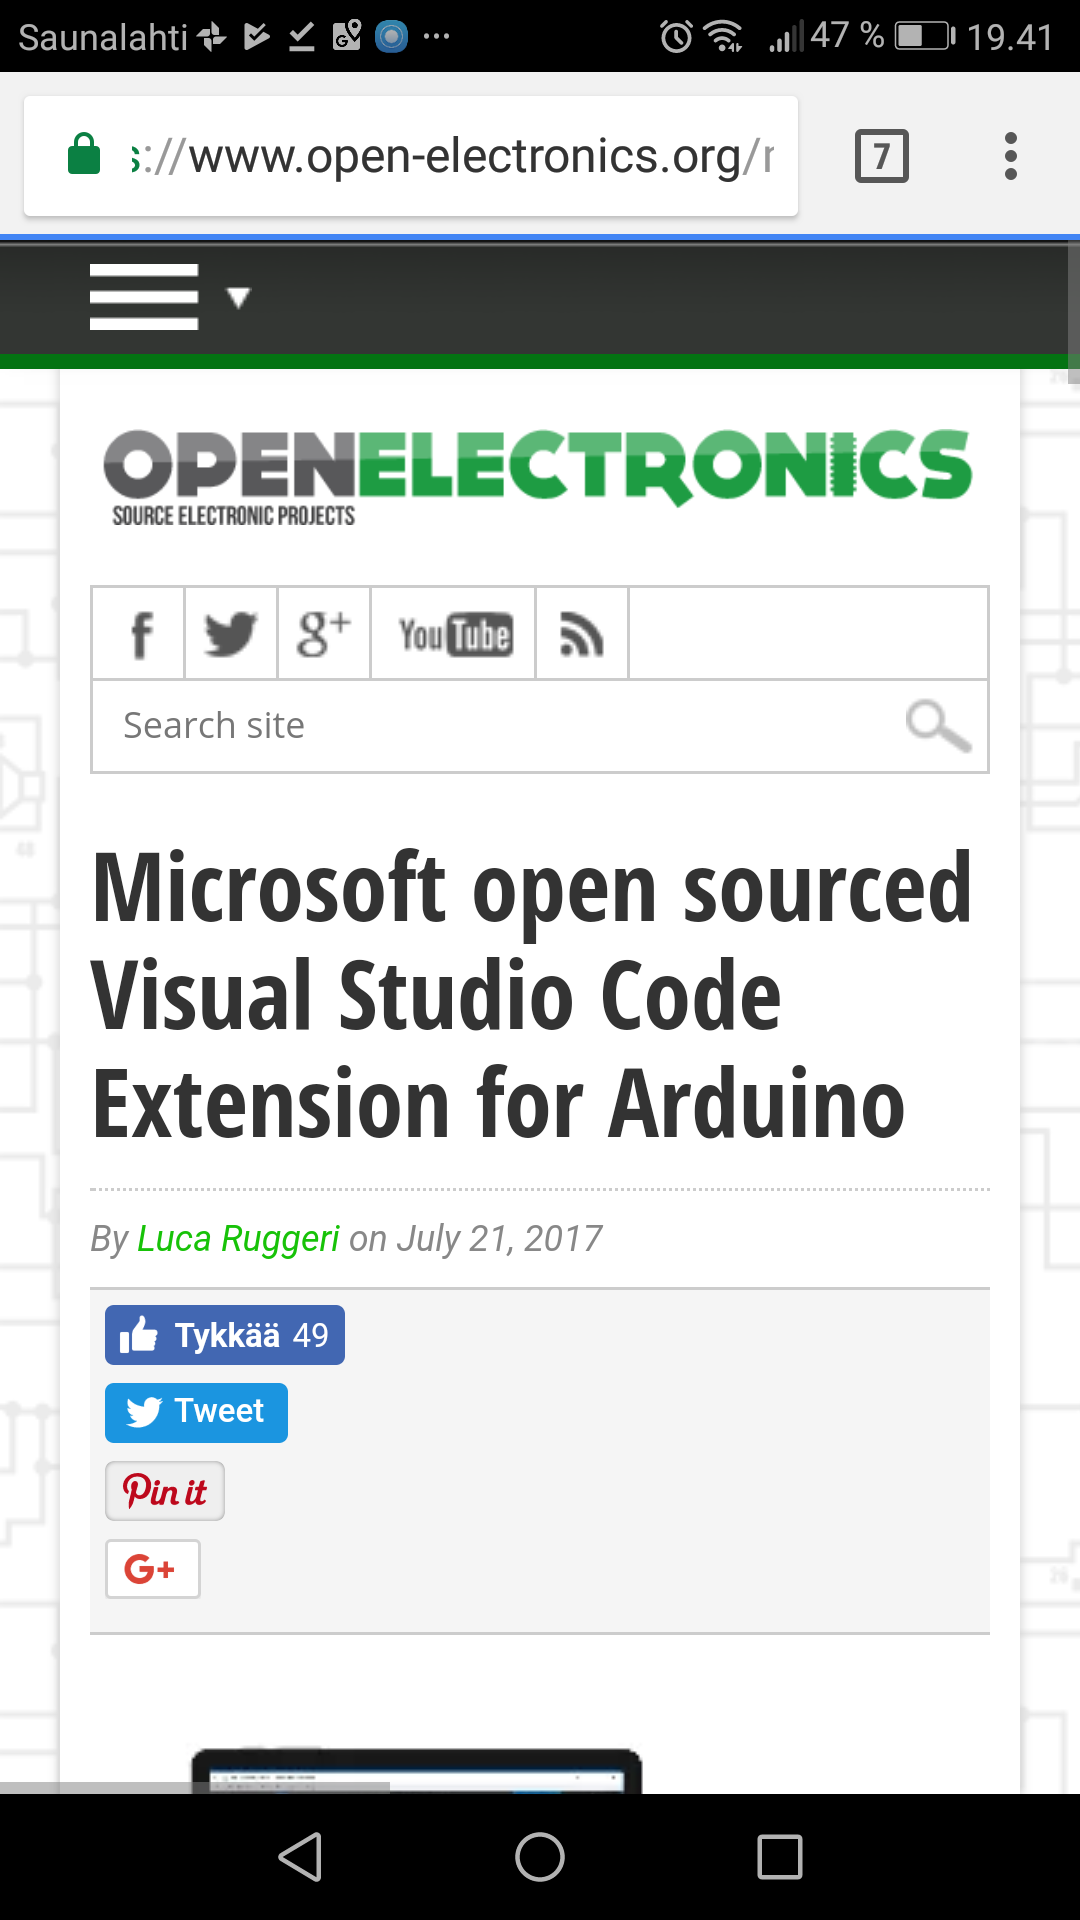 Microsoft open sourced visual studio code extension for